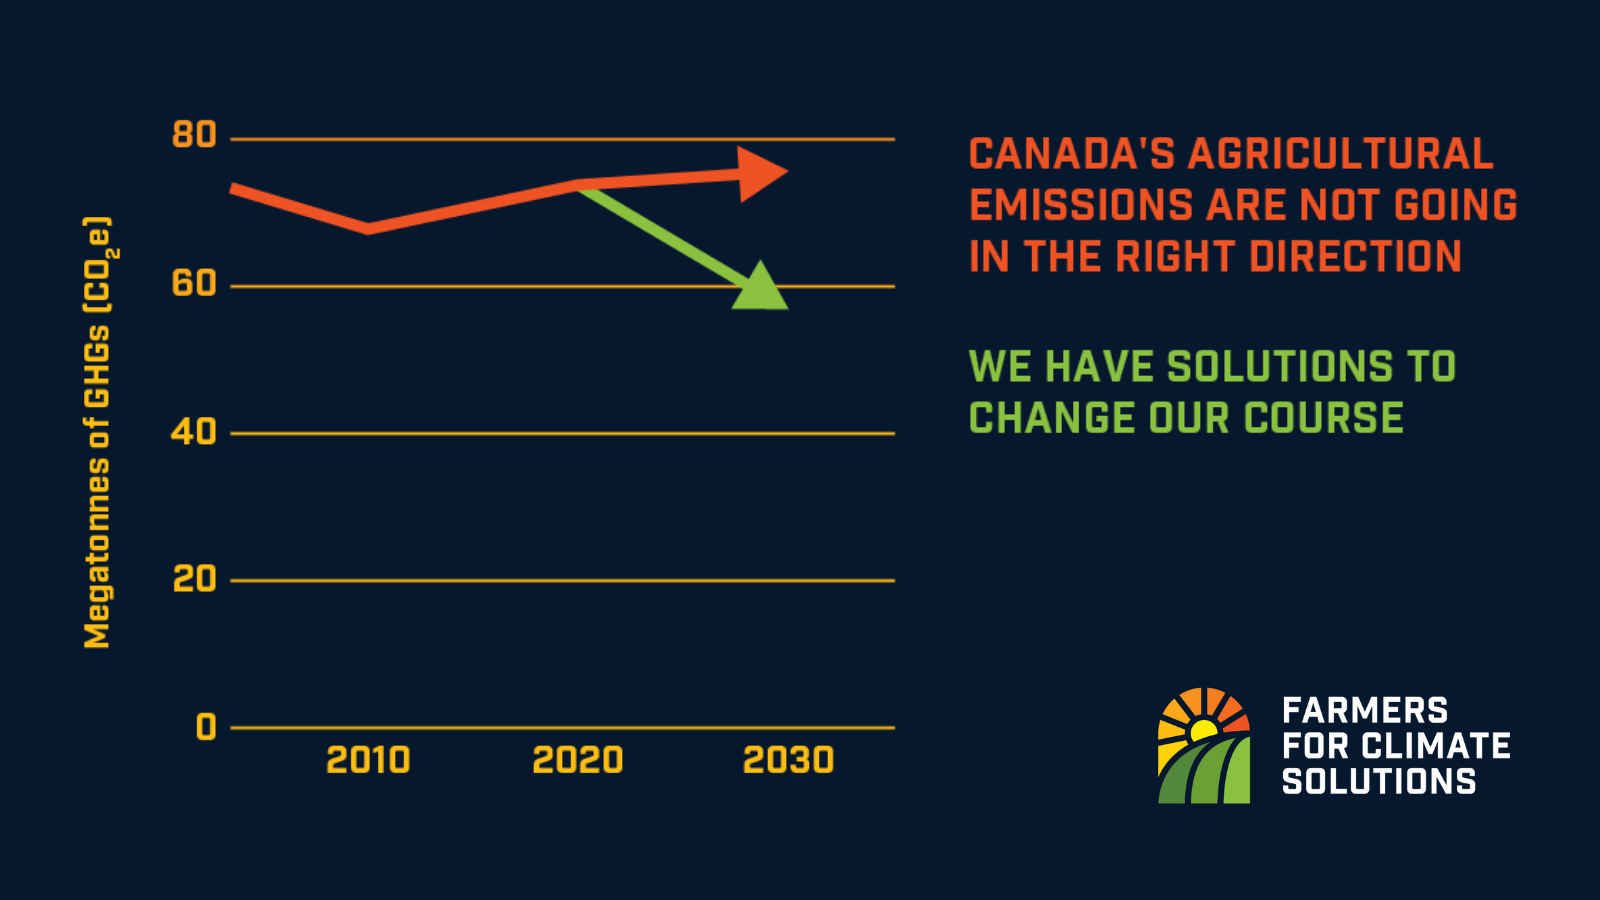 "Logo of Farmers for Climate Solutions. Image of a line graph. The y axis is labelled ""megatonnes of GHGs (CO2e)"" and the x axis is labelled with the years 2010, 2020, 2030. A red line trends up over the three years. It is accompanied by a sentence that says ""CANADA'S AGRICULTURAL EMISSIONS ARE NOT TRENDING IN THE RIGHT DIRECTION."" A green line branches downward off the red line beginning in 2020. An accompanying sentence says ""WE HAVE SOLUTIONS TO CHANGE OUR COURSE."""